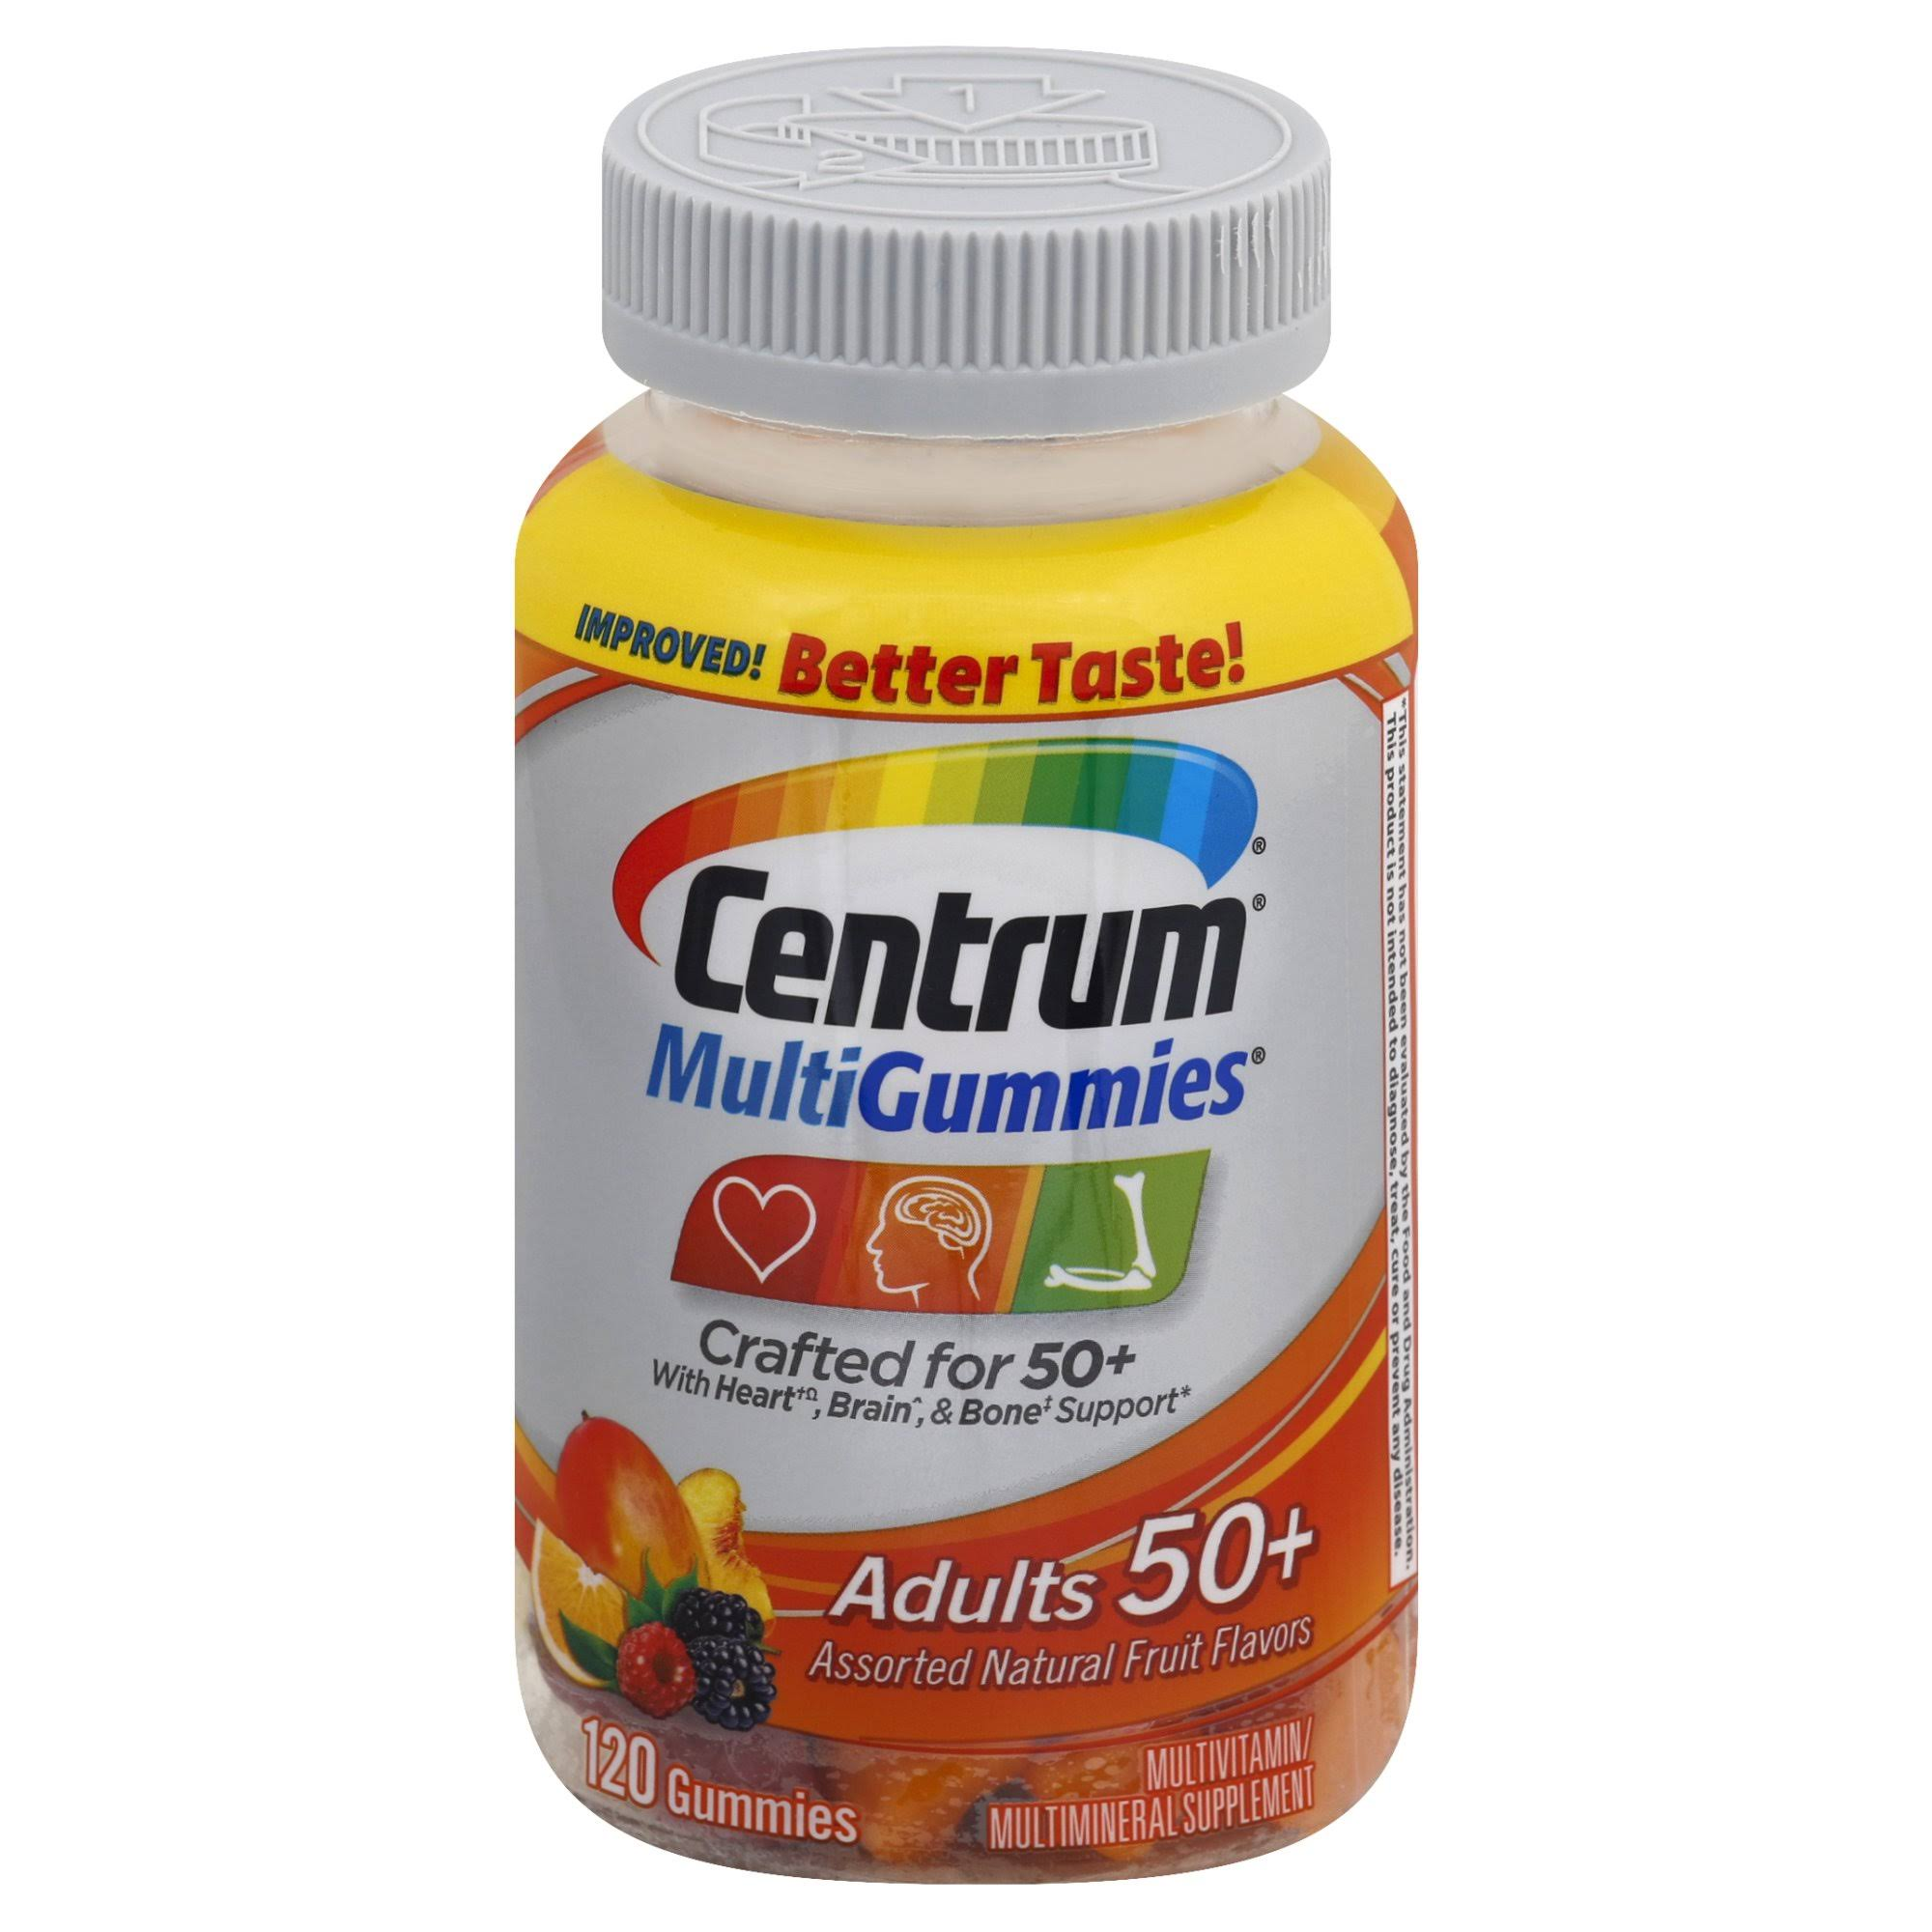 Centrum MultiGummies Multivitamin/Multimineral, Adults 50+, Gummies - 120 gummies